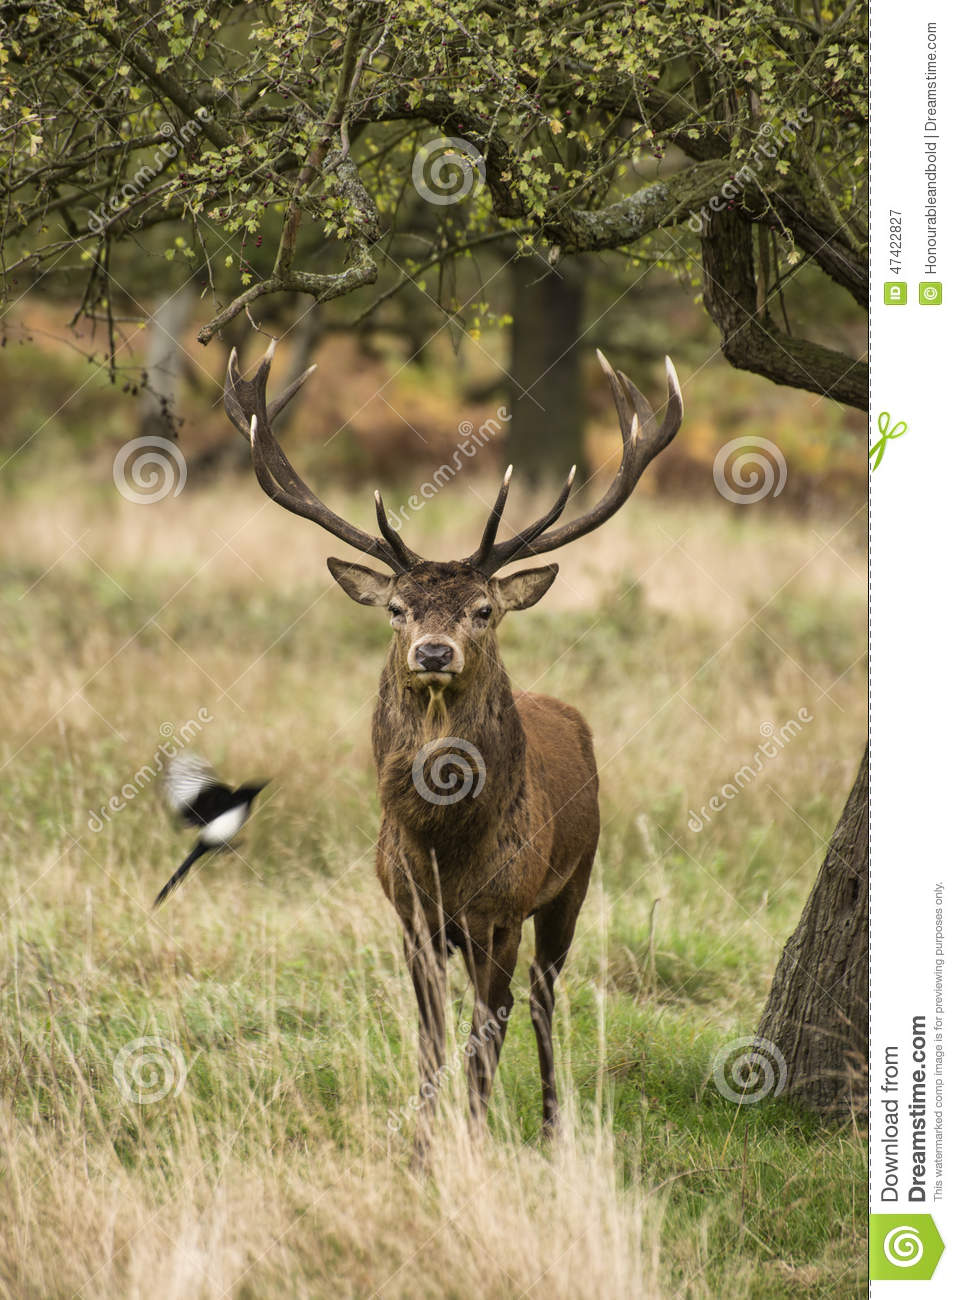 Landscaping Ties Red Deer : Majestic stunning red deer stag in autumn fall landscape stock photo image